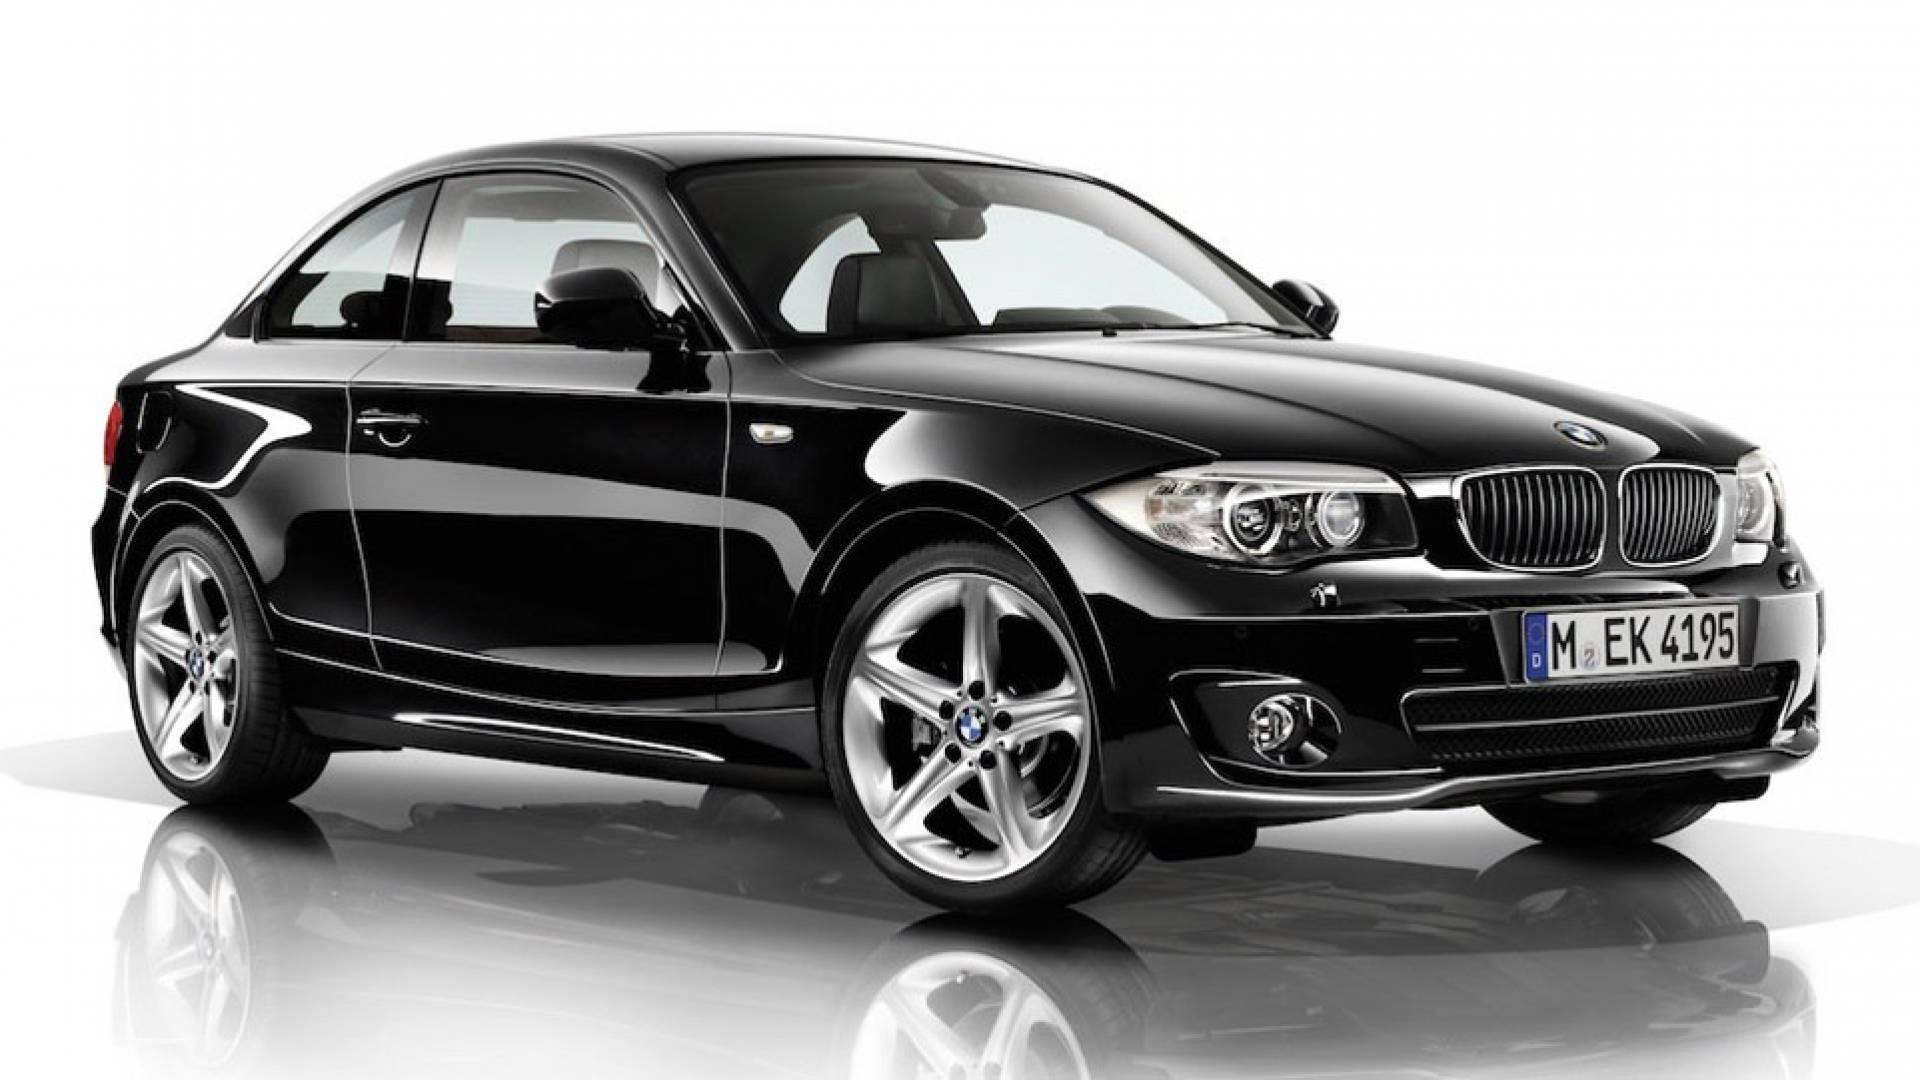 bmw serie 1 coupe precios noticias prueba ficha t cnica y fotos diariomotor. Black Bedroom Furniture Sets. Home Design Ideas